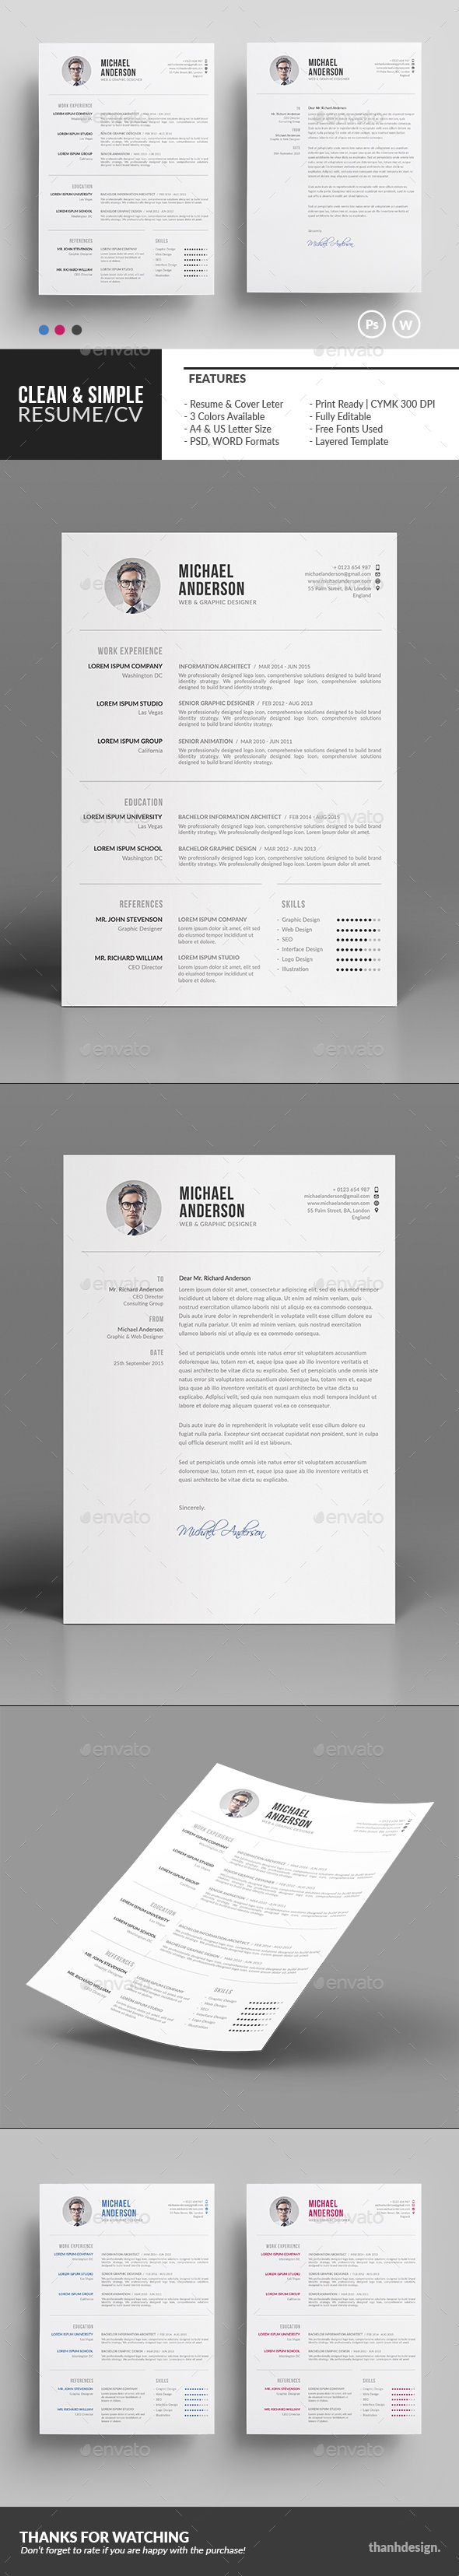 The Resume  Cv  Resume Cv Cv Template And Simple Resume